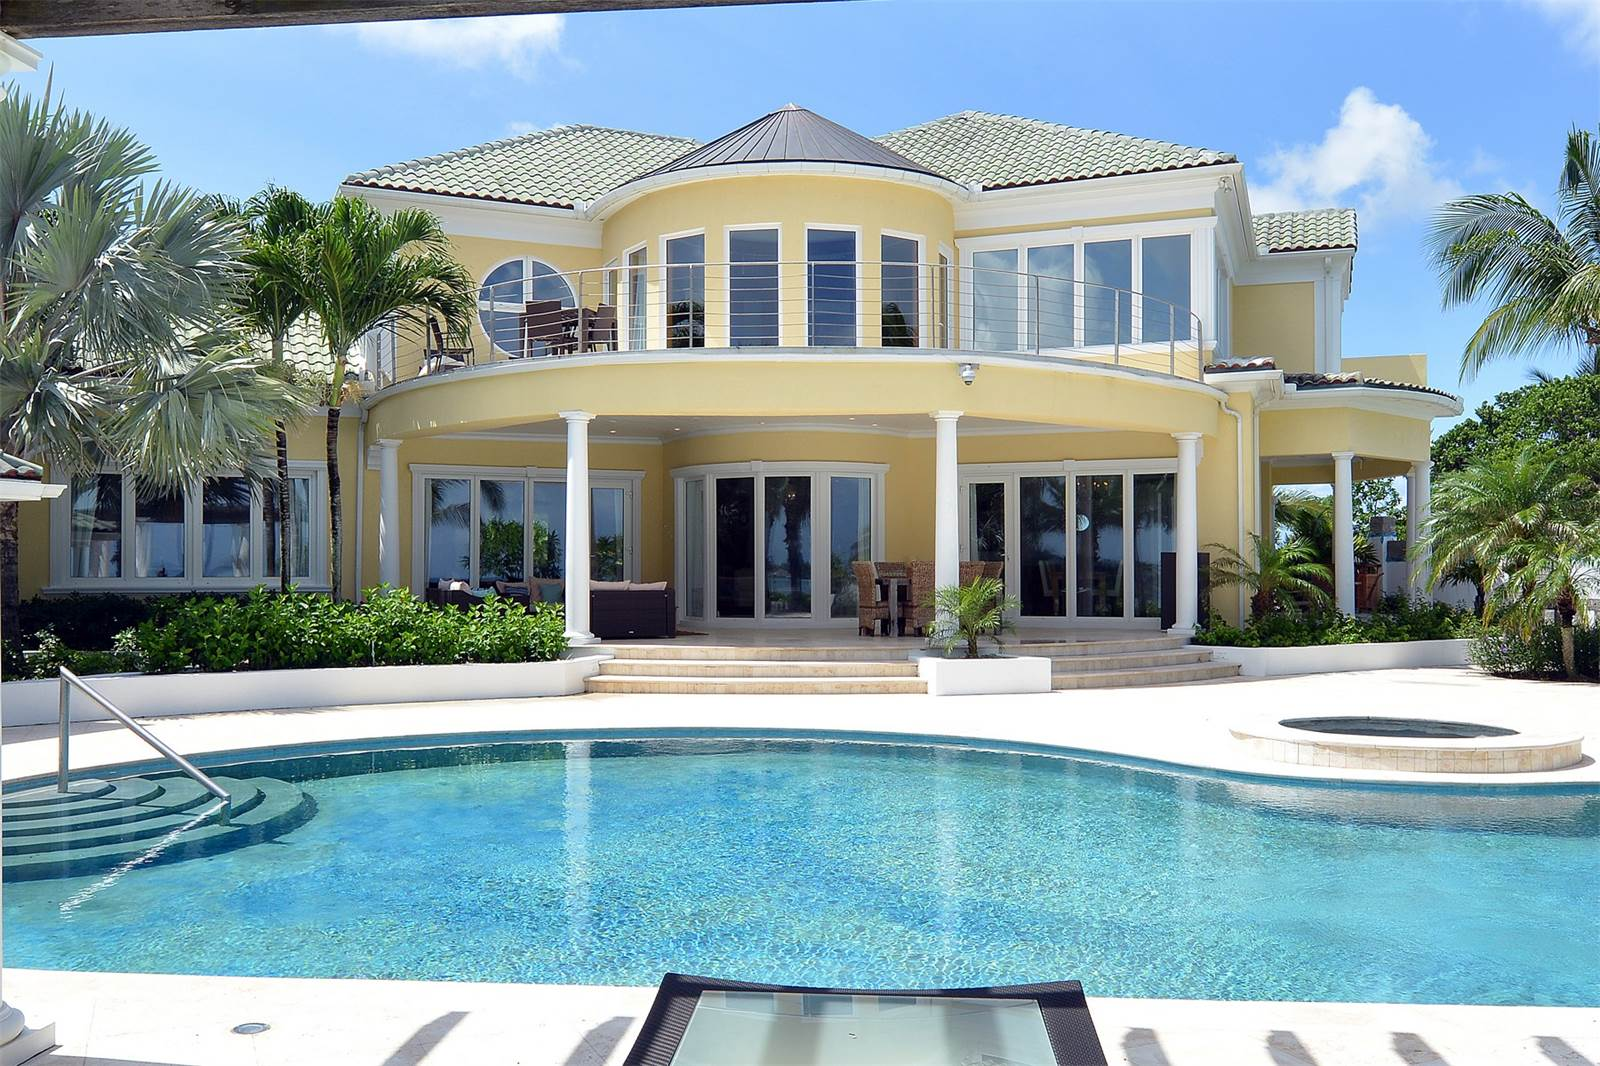 Casa Unifamiliar por un Venta en Charming Beachfront Residence in Old Fort Bay Old Fort Bay, Nueva Providencia / Nassau, Bahamas